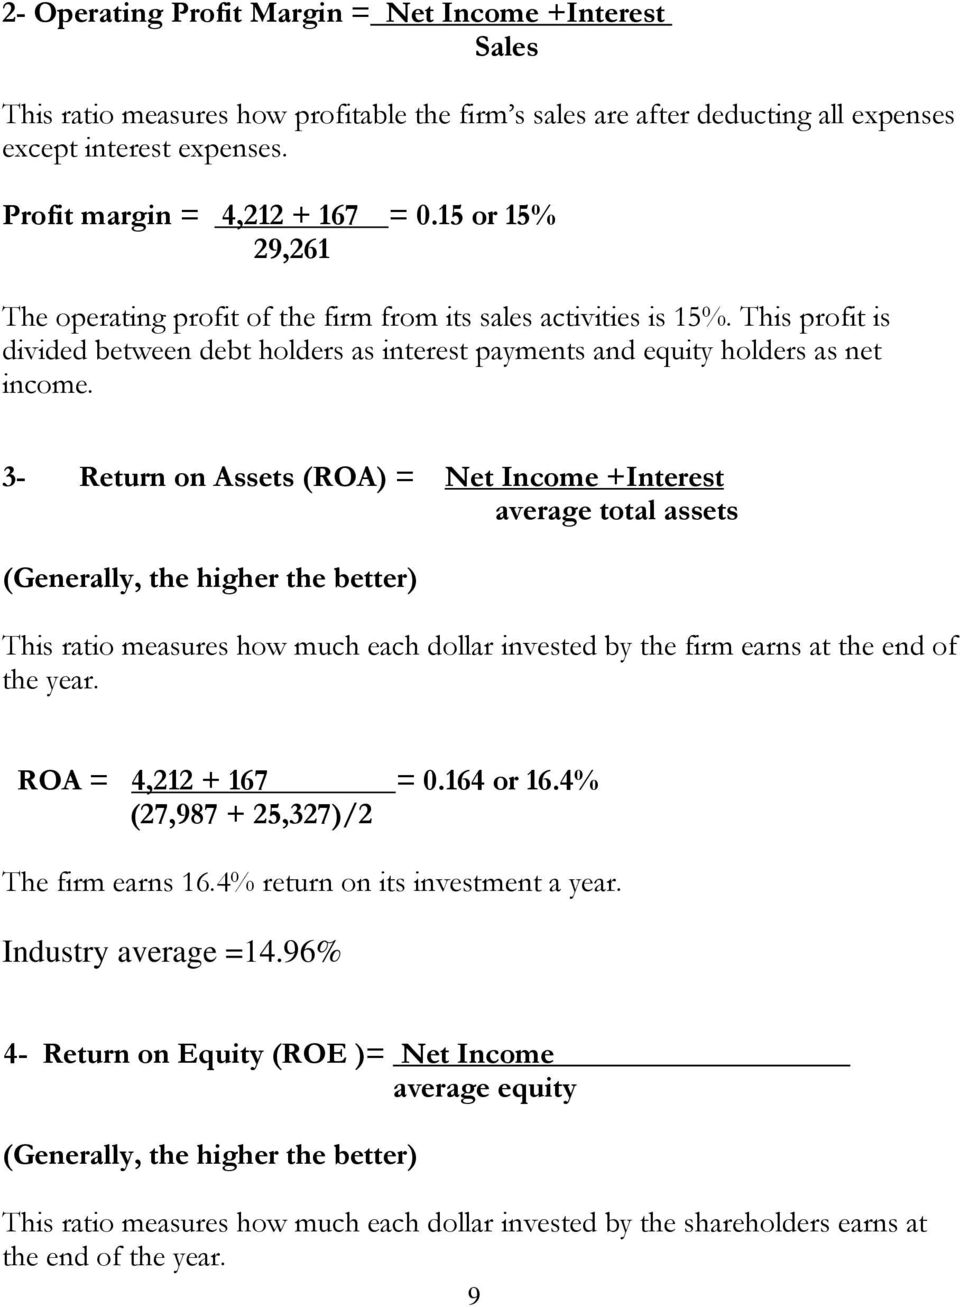 3- Return on Assets (ROA) = Net Income +Interest average total assets This ratio measures how much each dollar invested by the firm earns at the end of the year. ROA = 4,212 + 167 = 0.164 or 16.